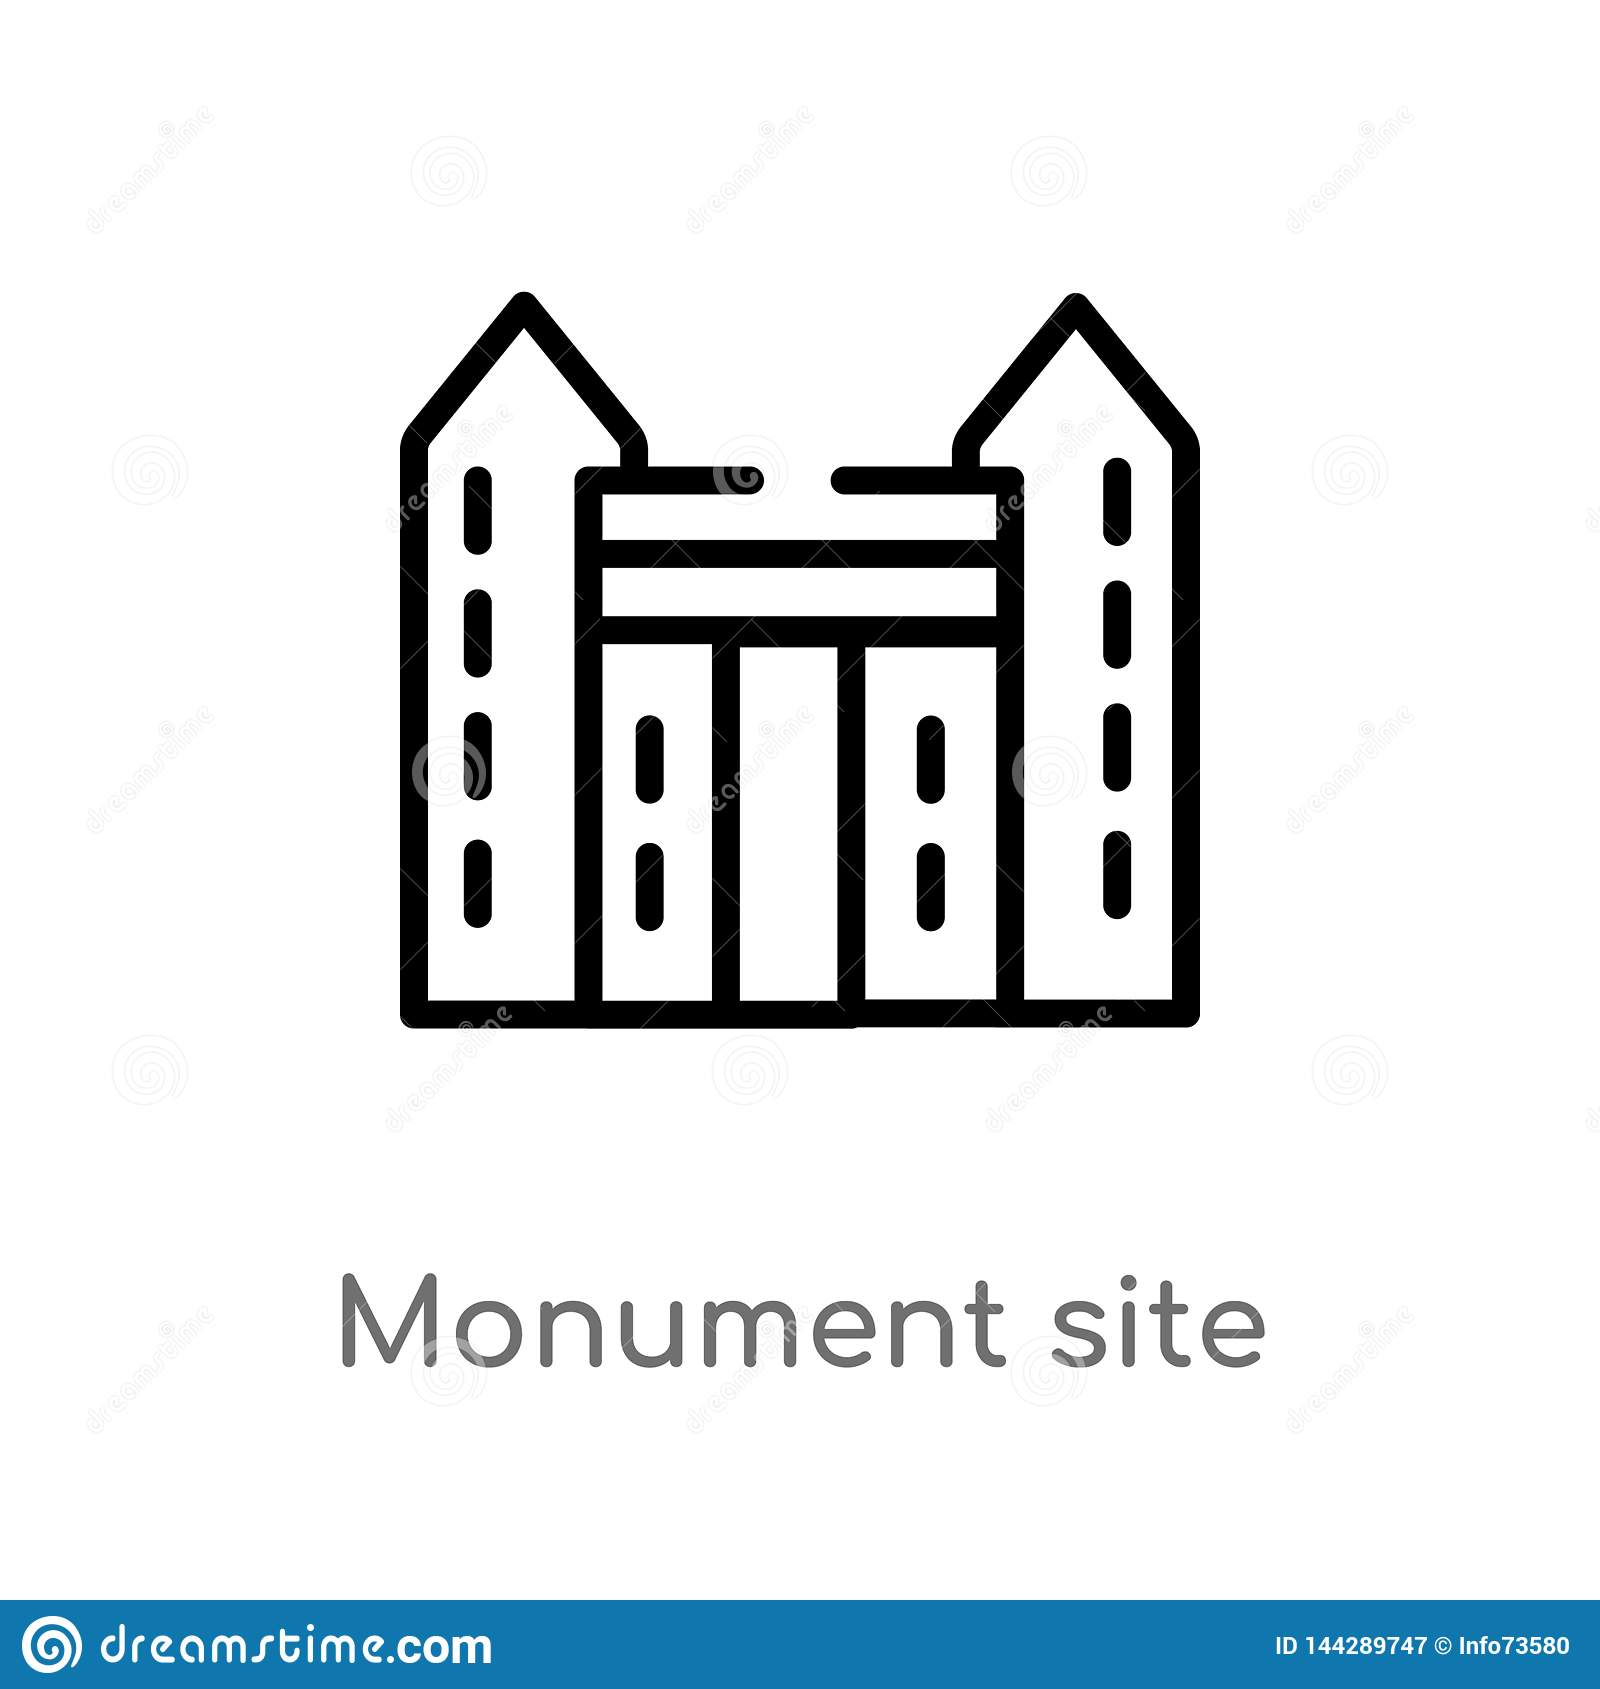 outline monument site vector icon. isolated black simple line element illustration from monuments concept. editable vector stroke